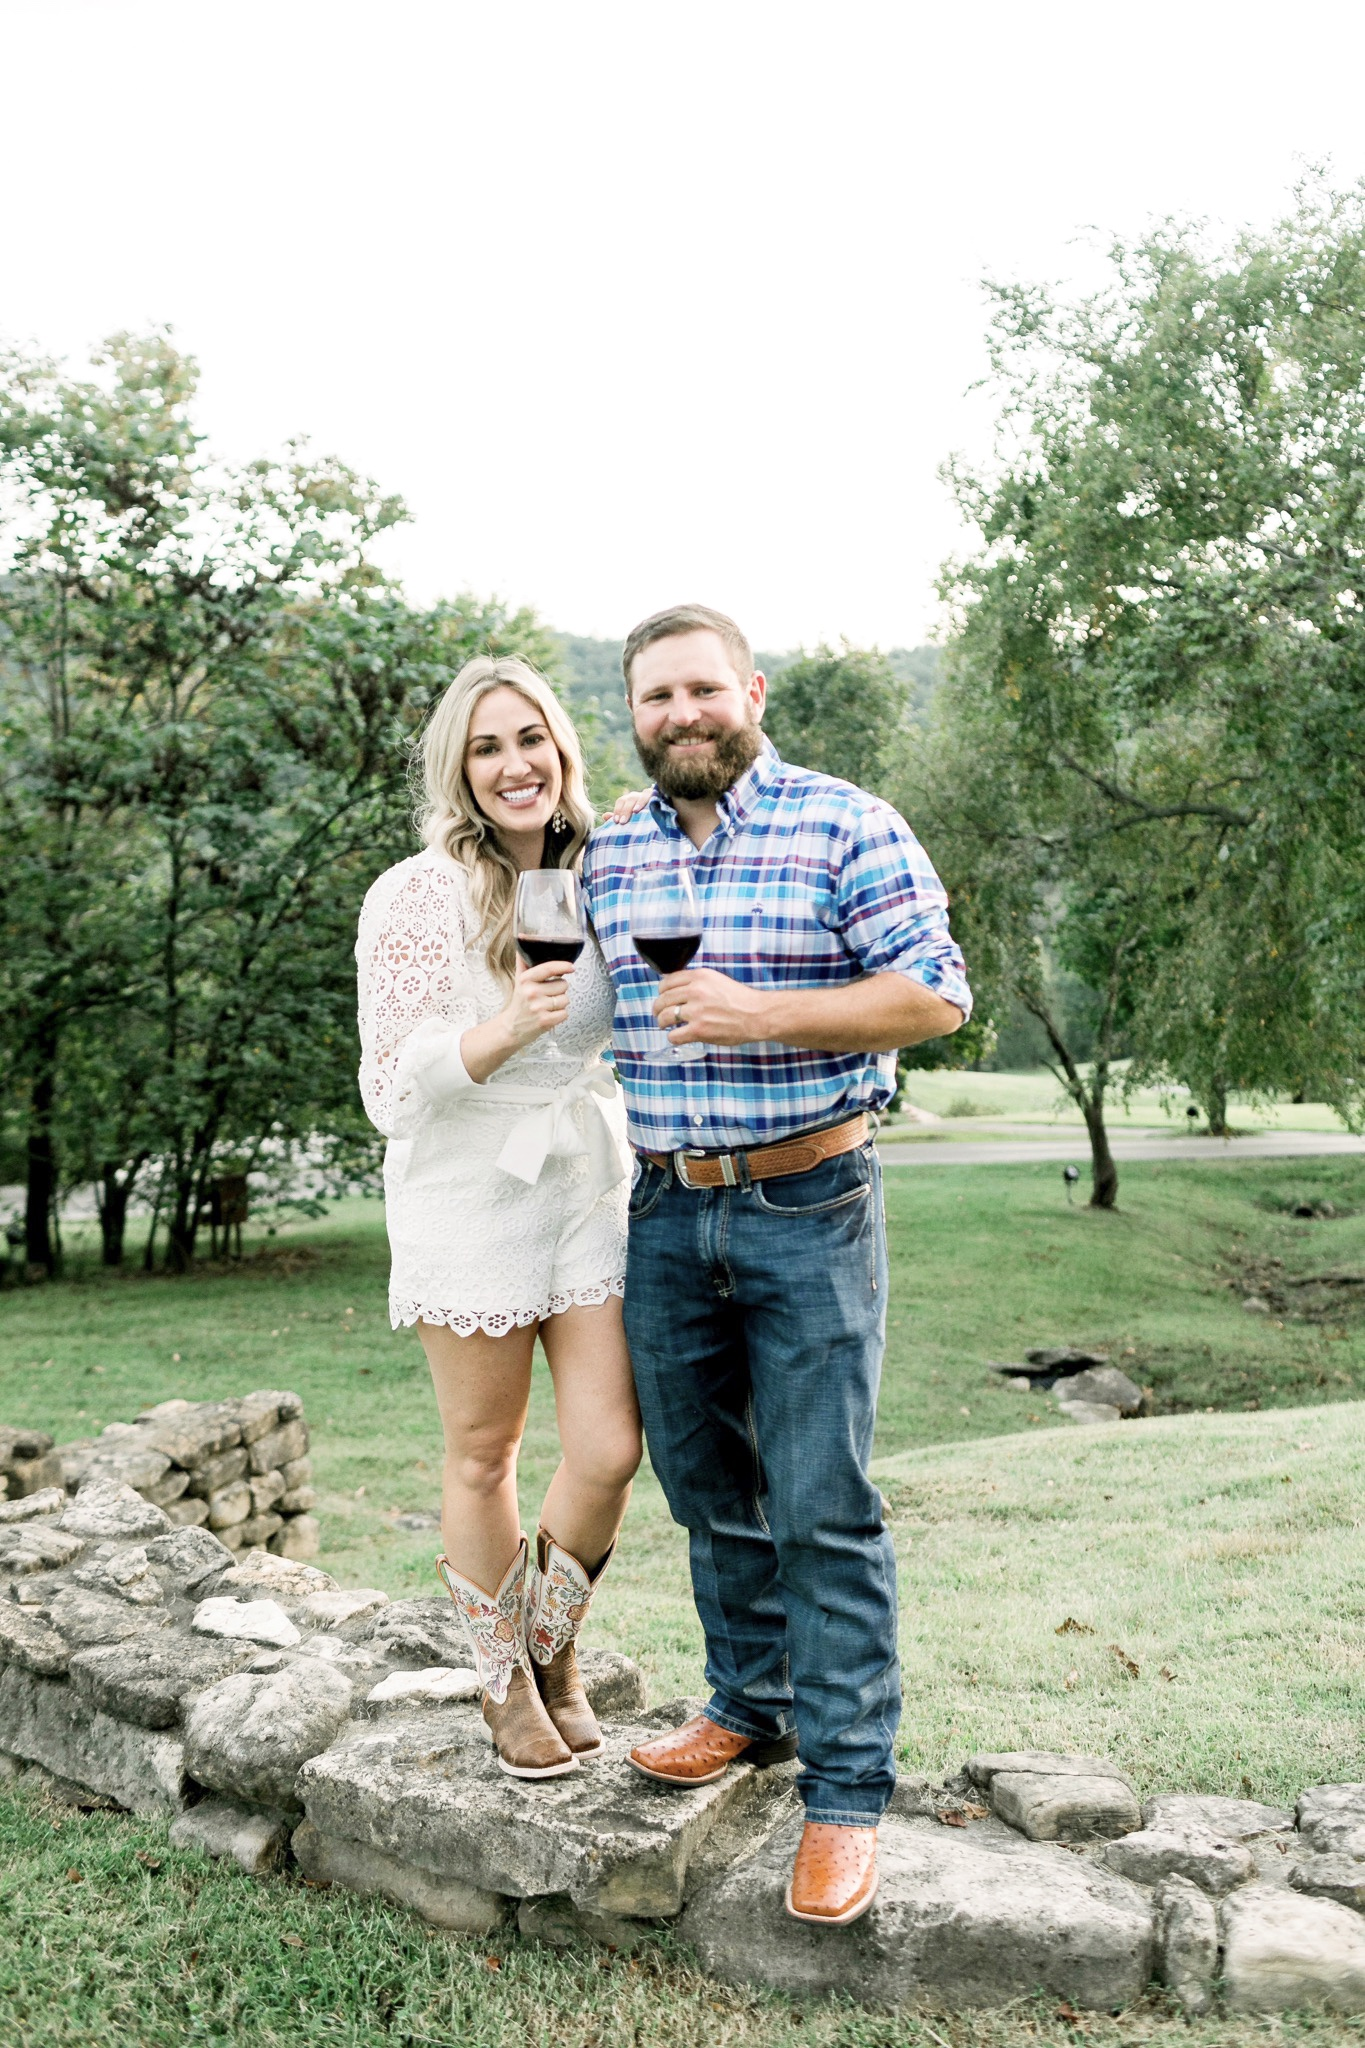 Rustic Wedding Reception in Branson MO featured by top Memphis lifestyle blog, Walking in Memphis in High Heels.Rustic Wedding Reception in Branson MO featured by top Memphis lifestyle blog, Walking in Memphis in High Heels.